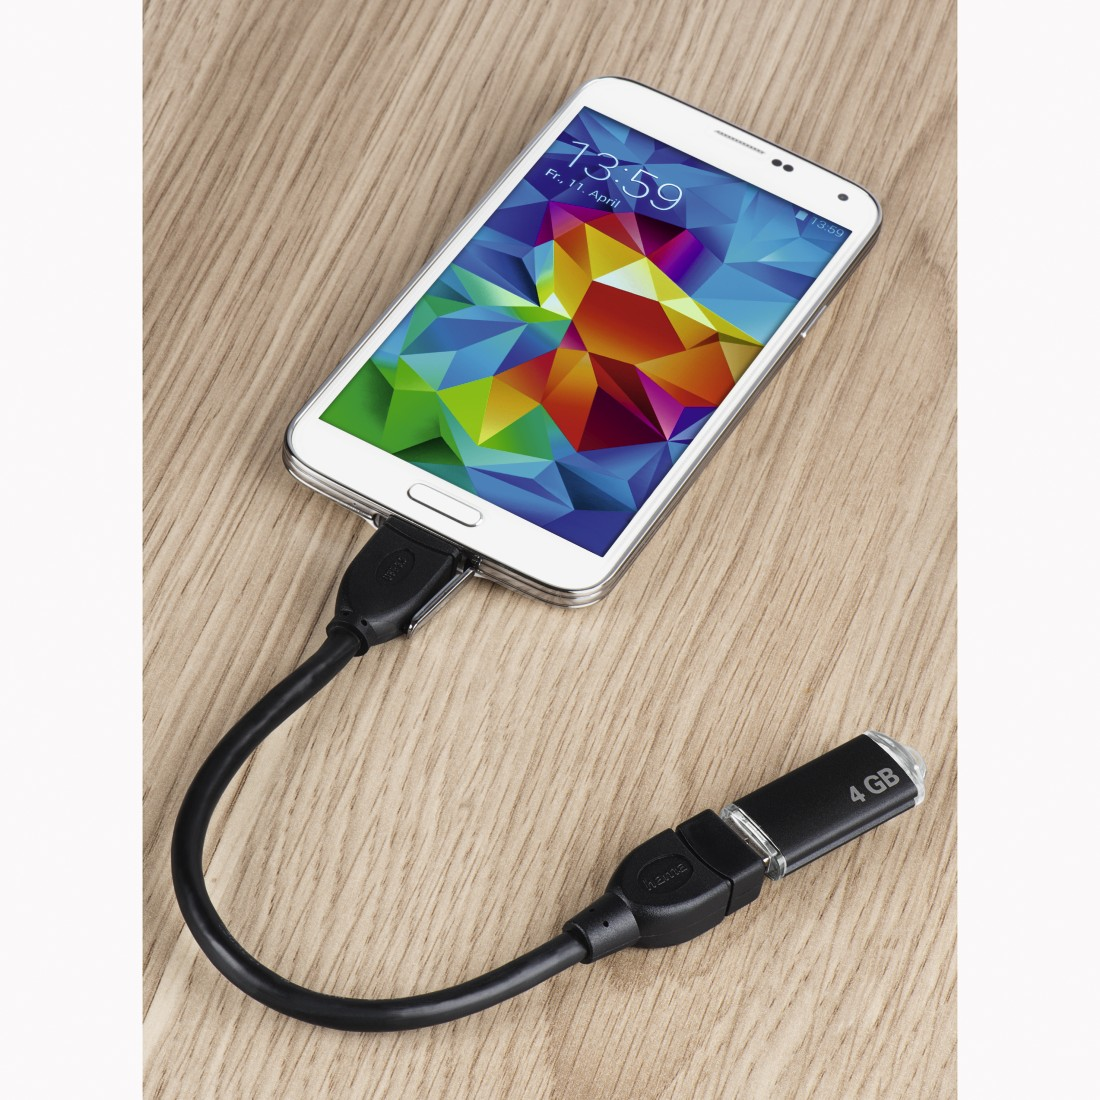 awx2 High-Res Appliance 2 - Hama, USB 2.0 Adapter Cable, OTG, micro B plug - A socket, 15 cm, black